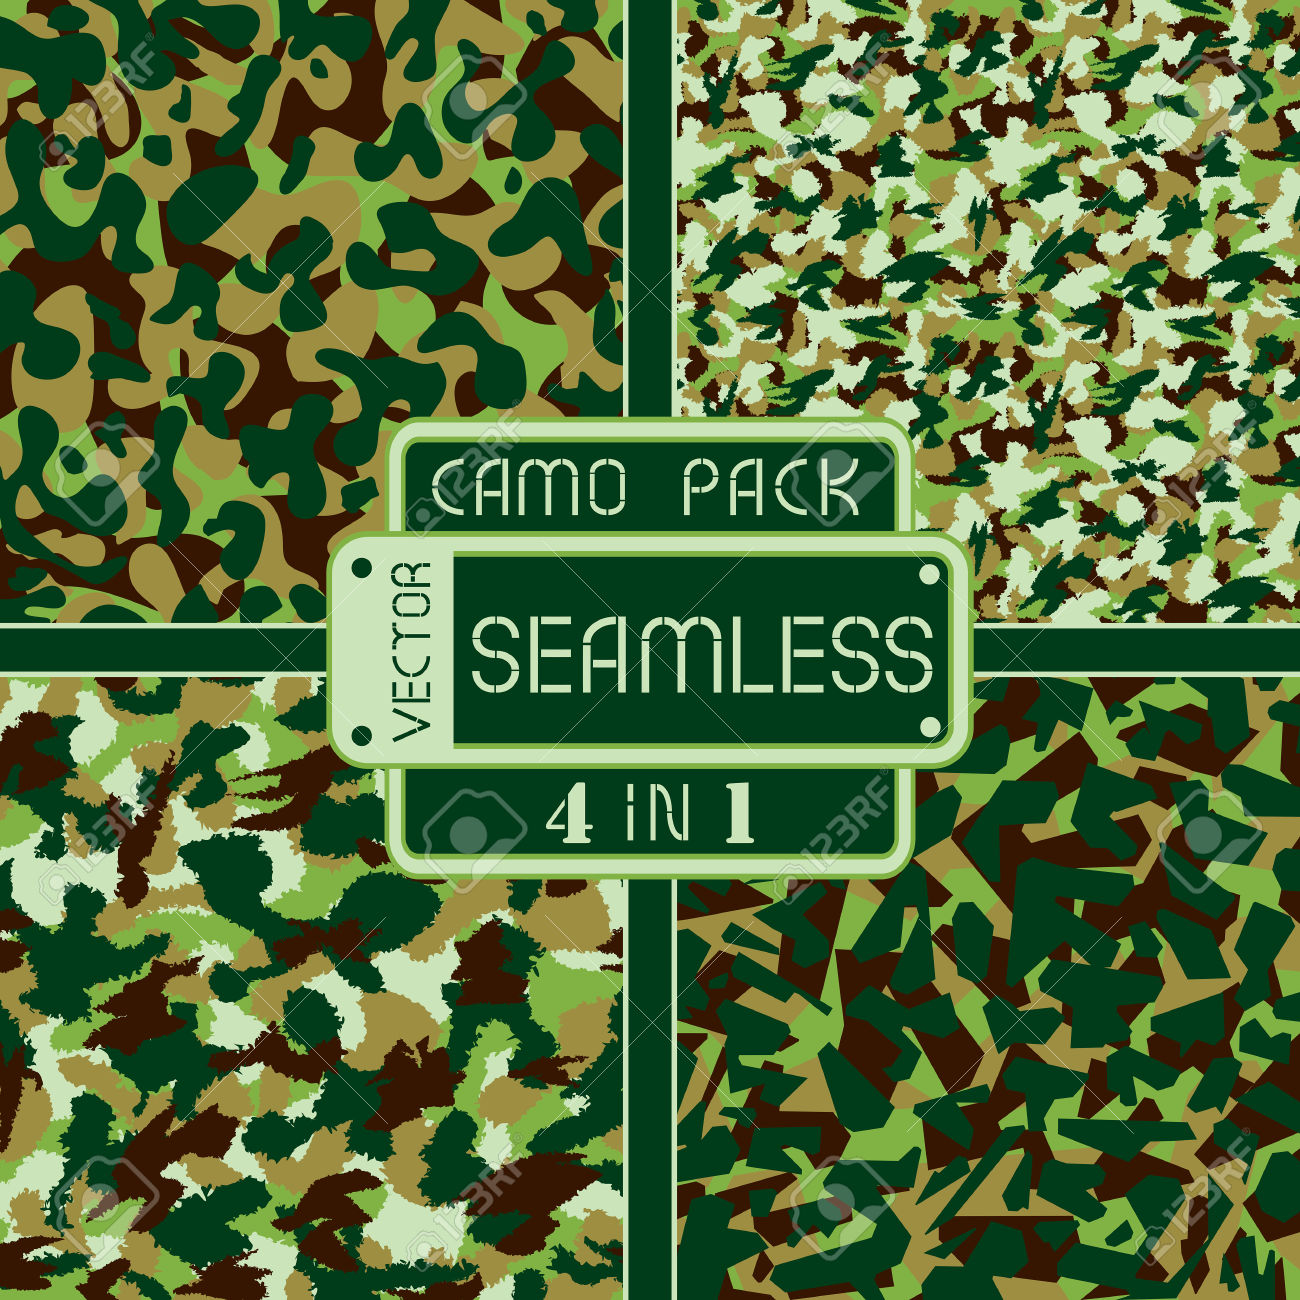 War Universal Nature Camouflage Pack 4 In 1 Seamless Vector.